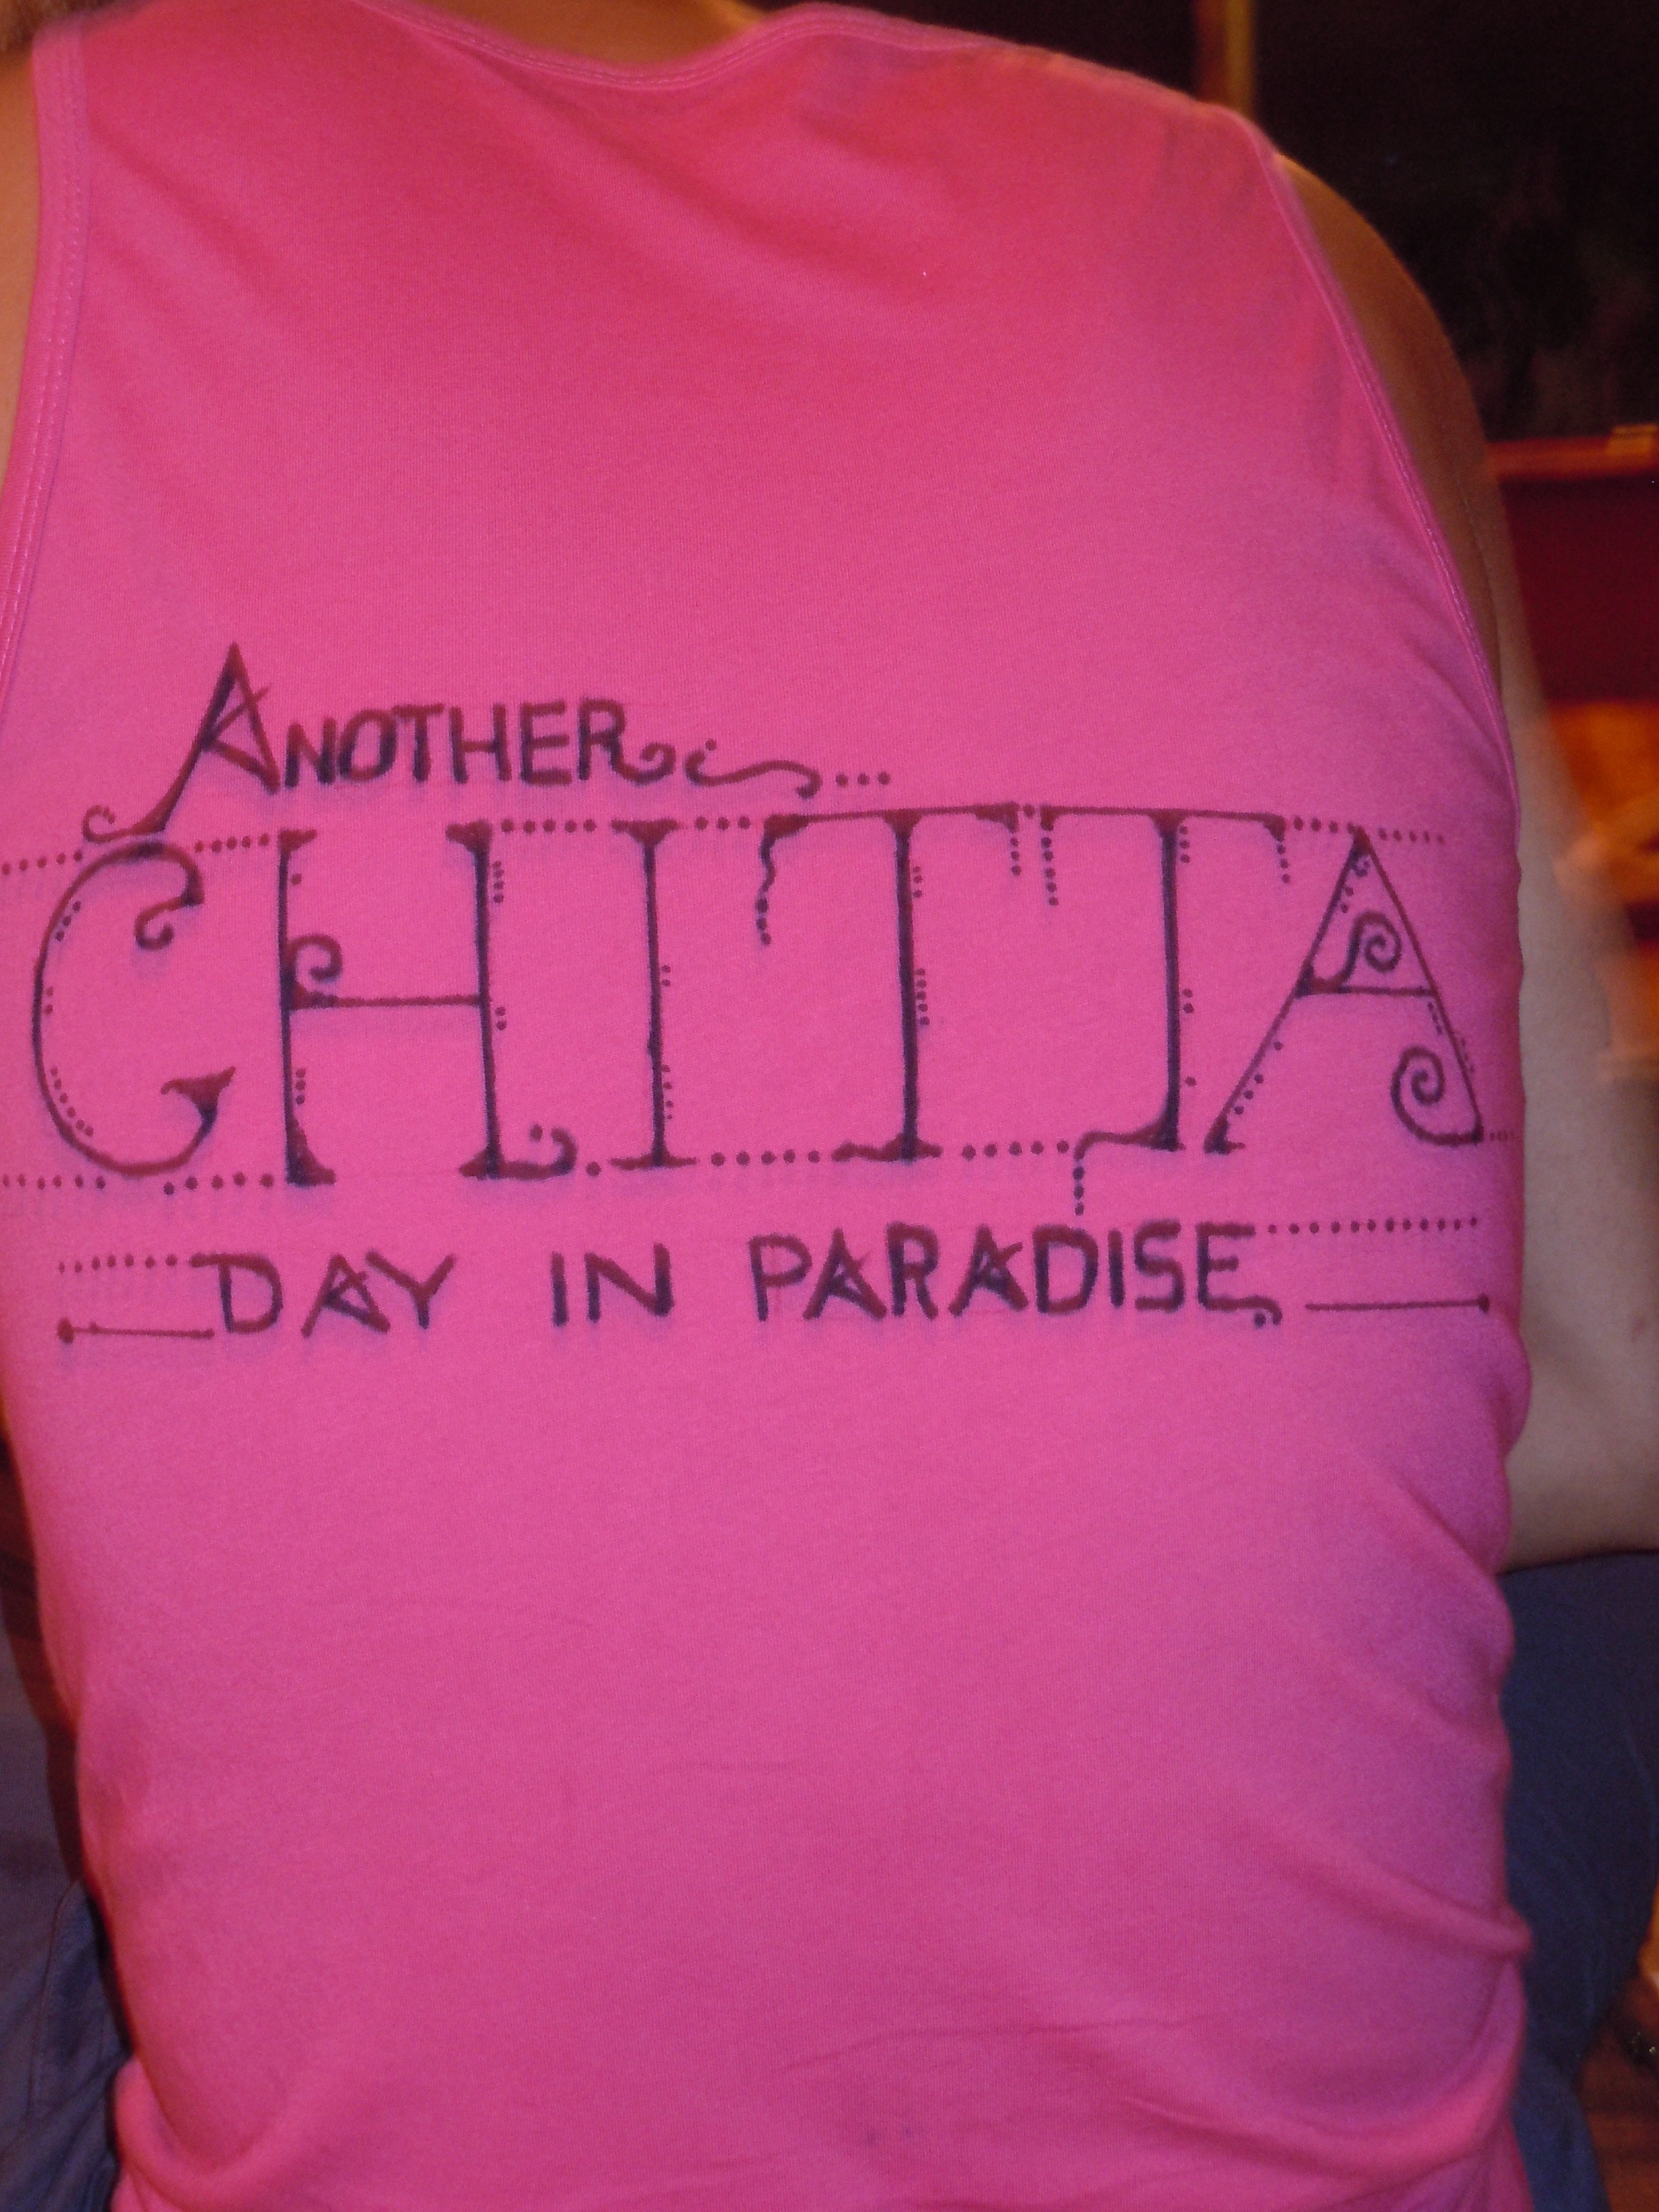 Another Chitta Day in Paradise. Artwork by David Smith.